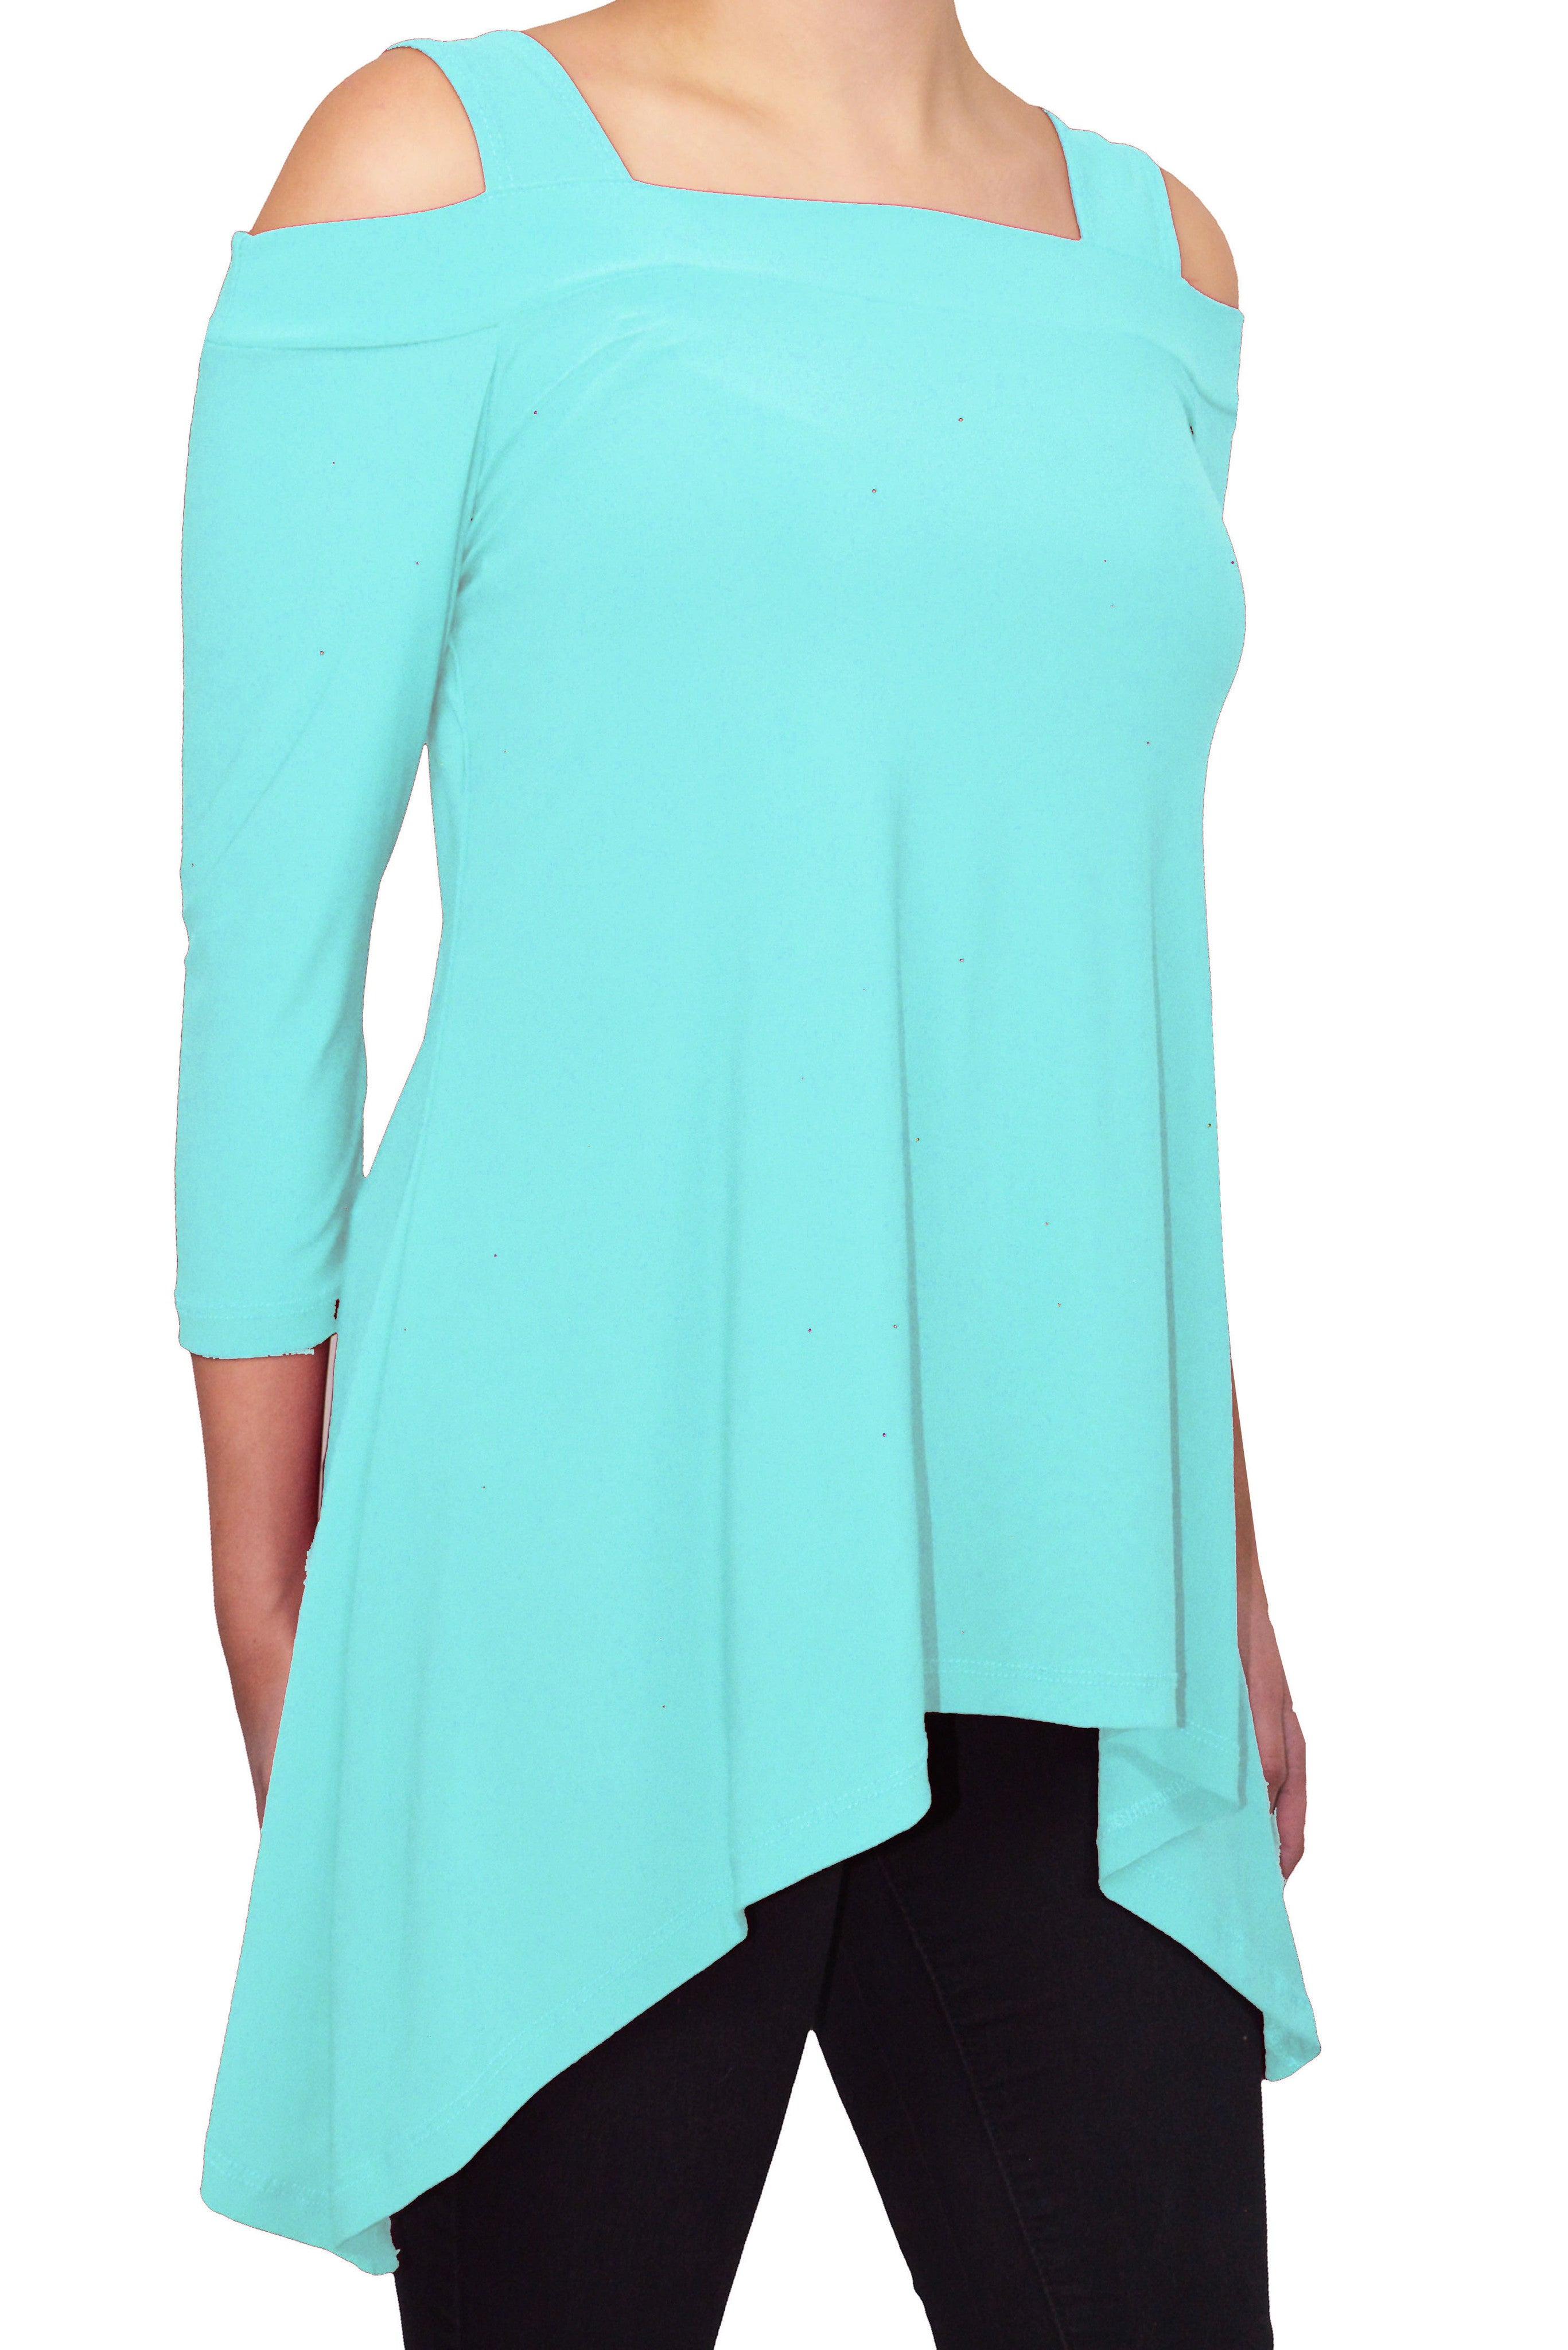 Avital Cold Shoulder Trapeze Tunic Shirt | Eggshell Aqua Blue